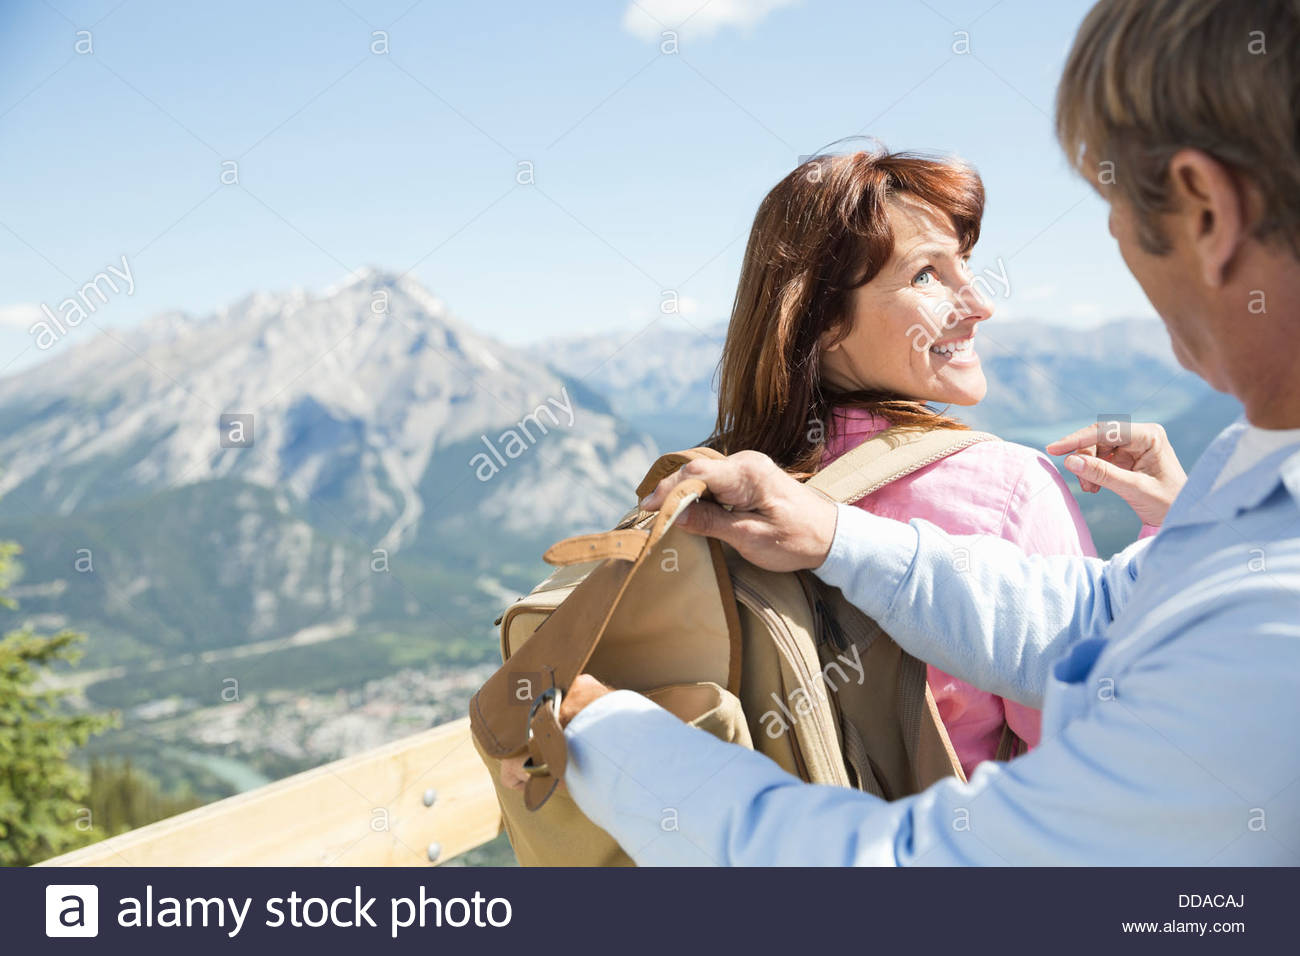 Man searching through backpack - Stock Image